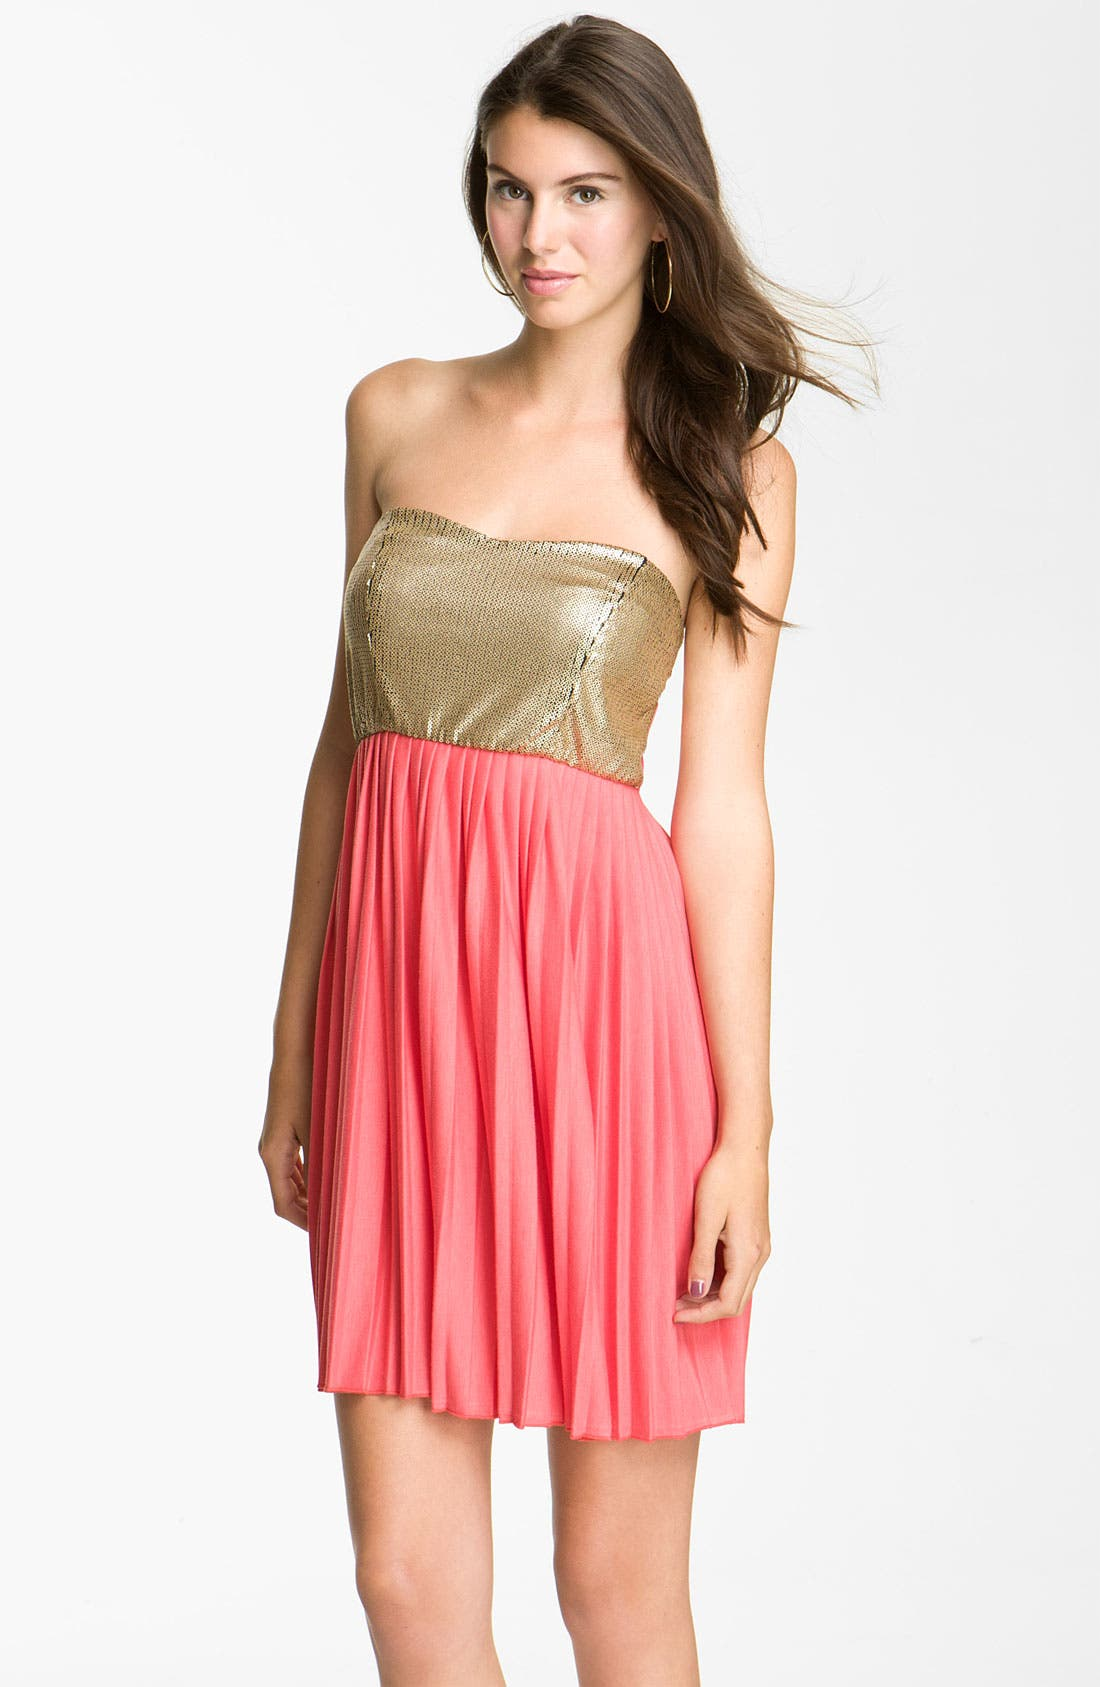 Alternate Image 1 Selected - Accidentally In Love Sequin Bodice Dress (Juniors)